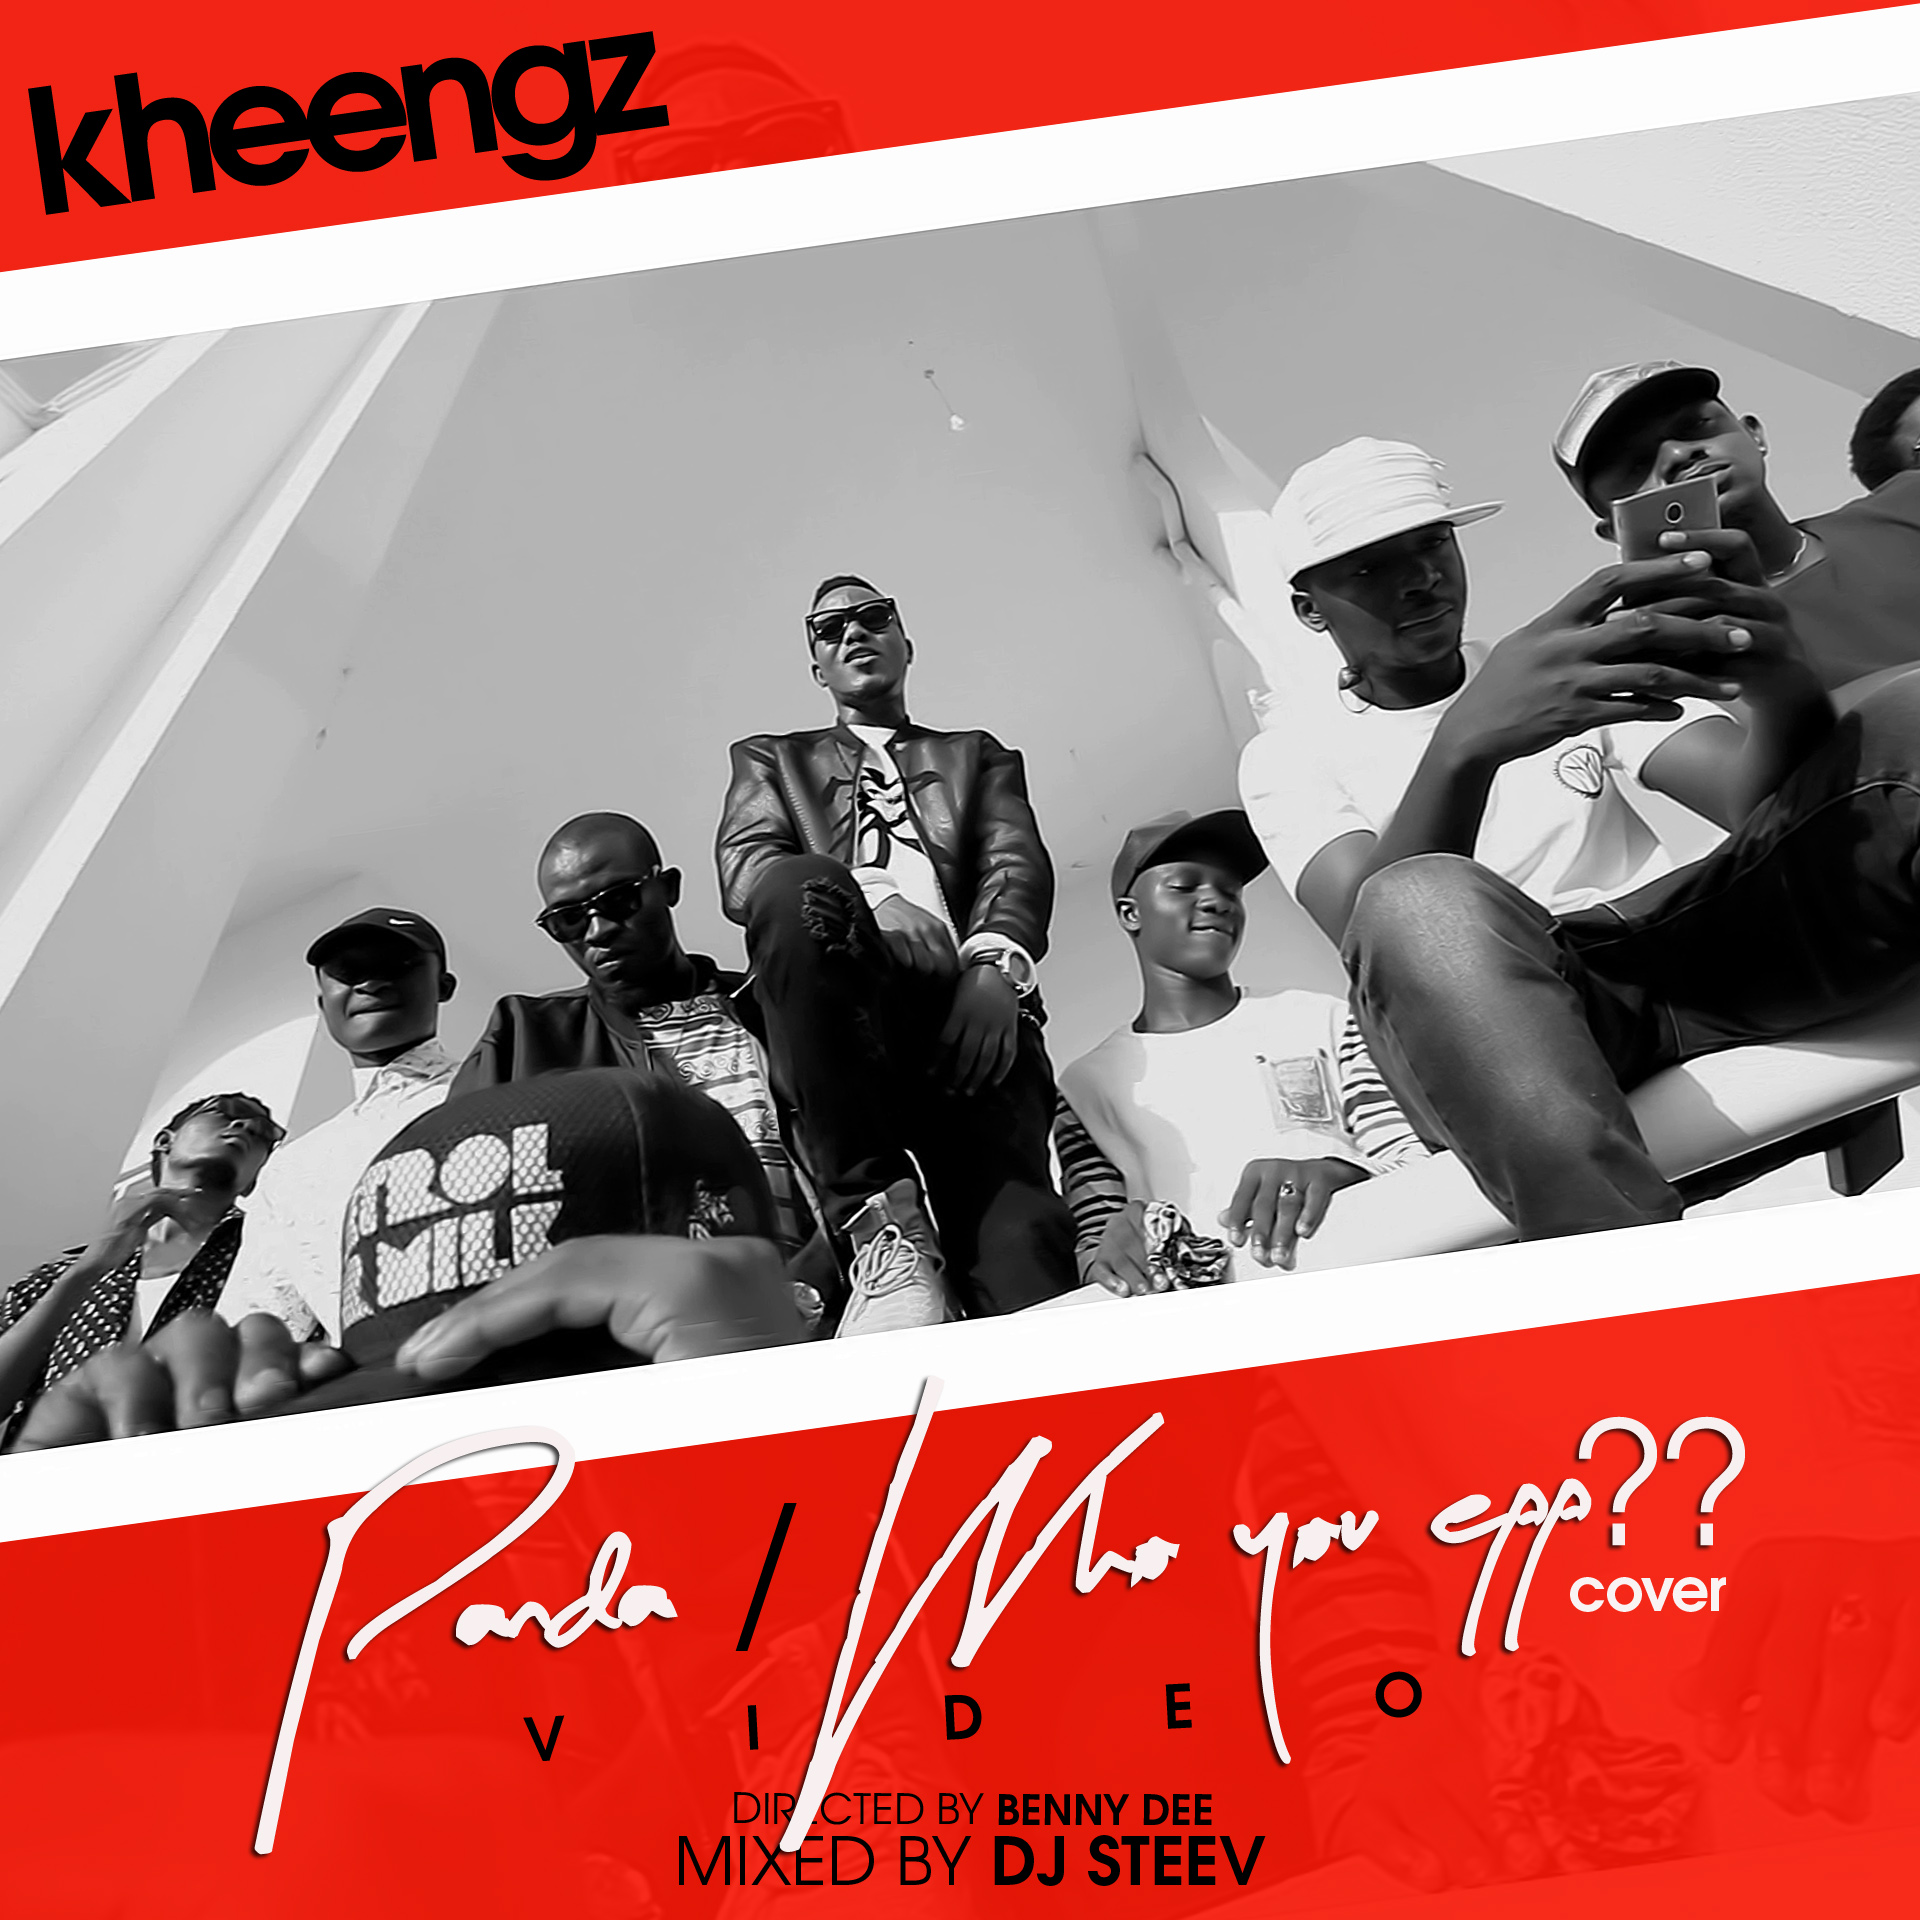 VIDEO: Kheengz - Panda / Who You Epp